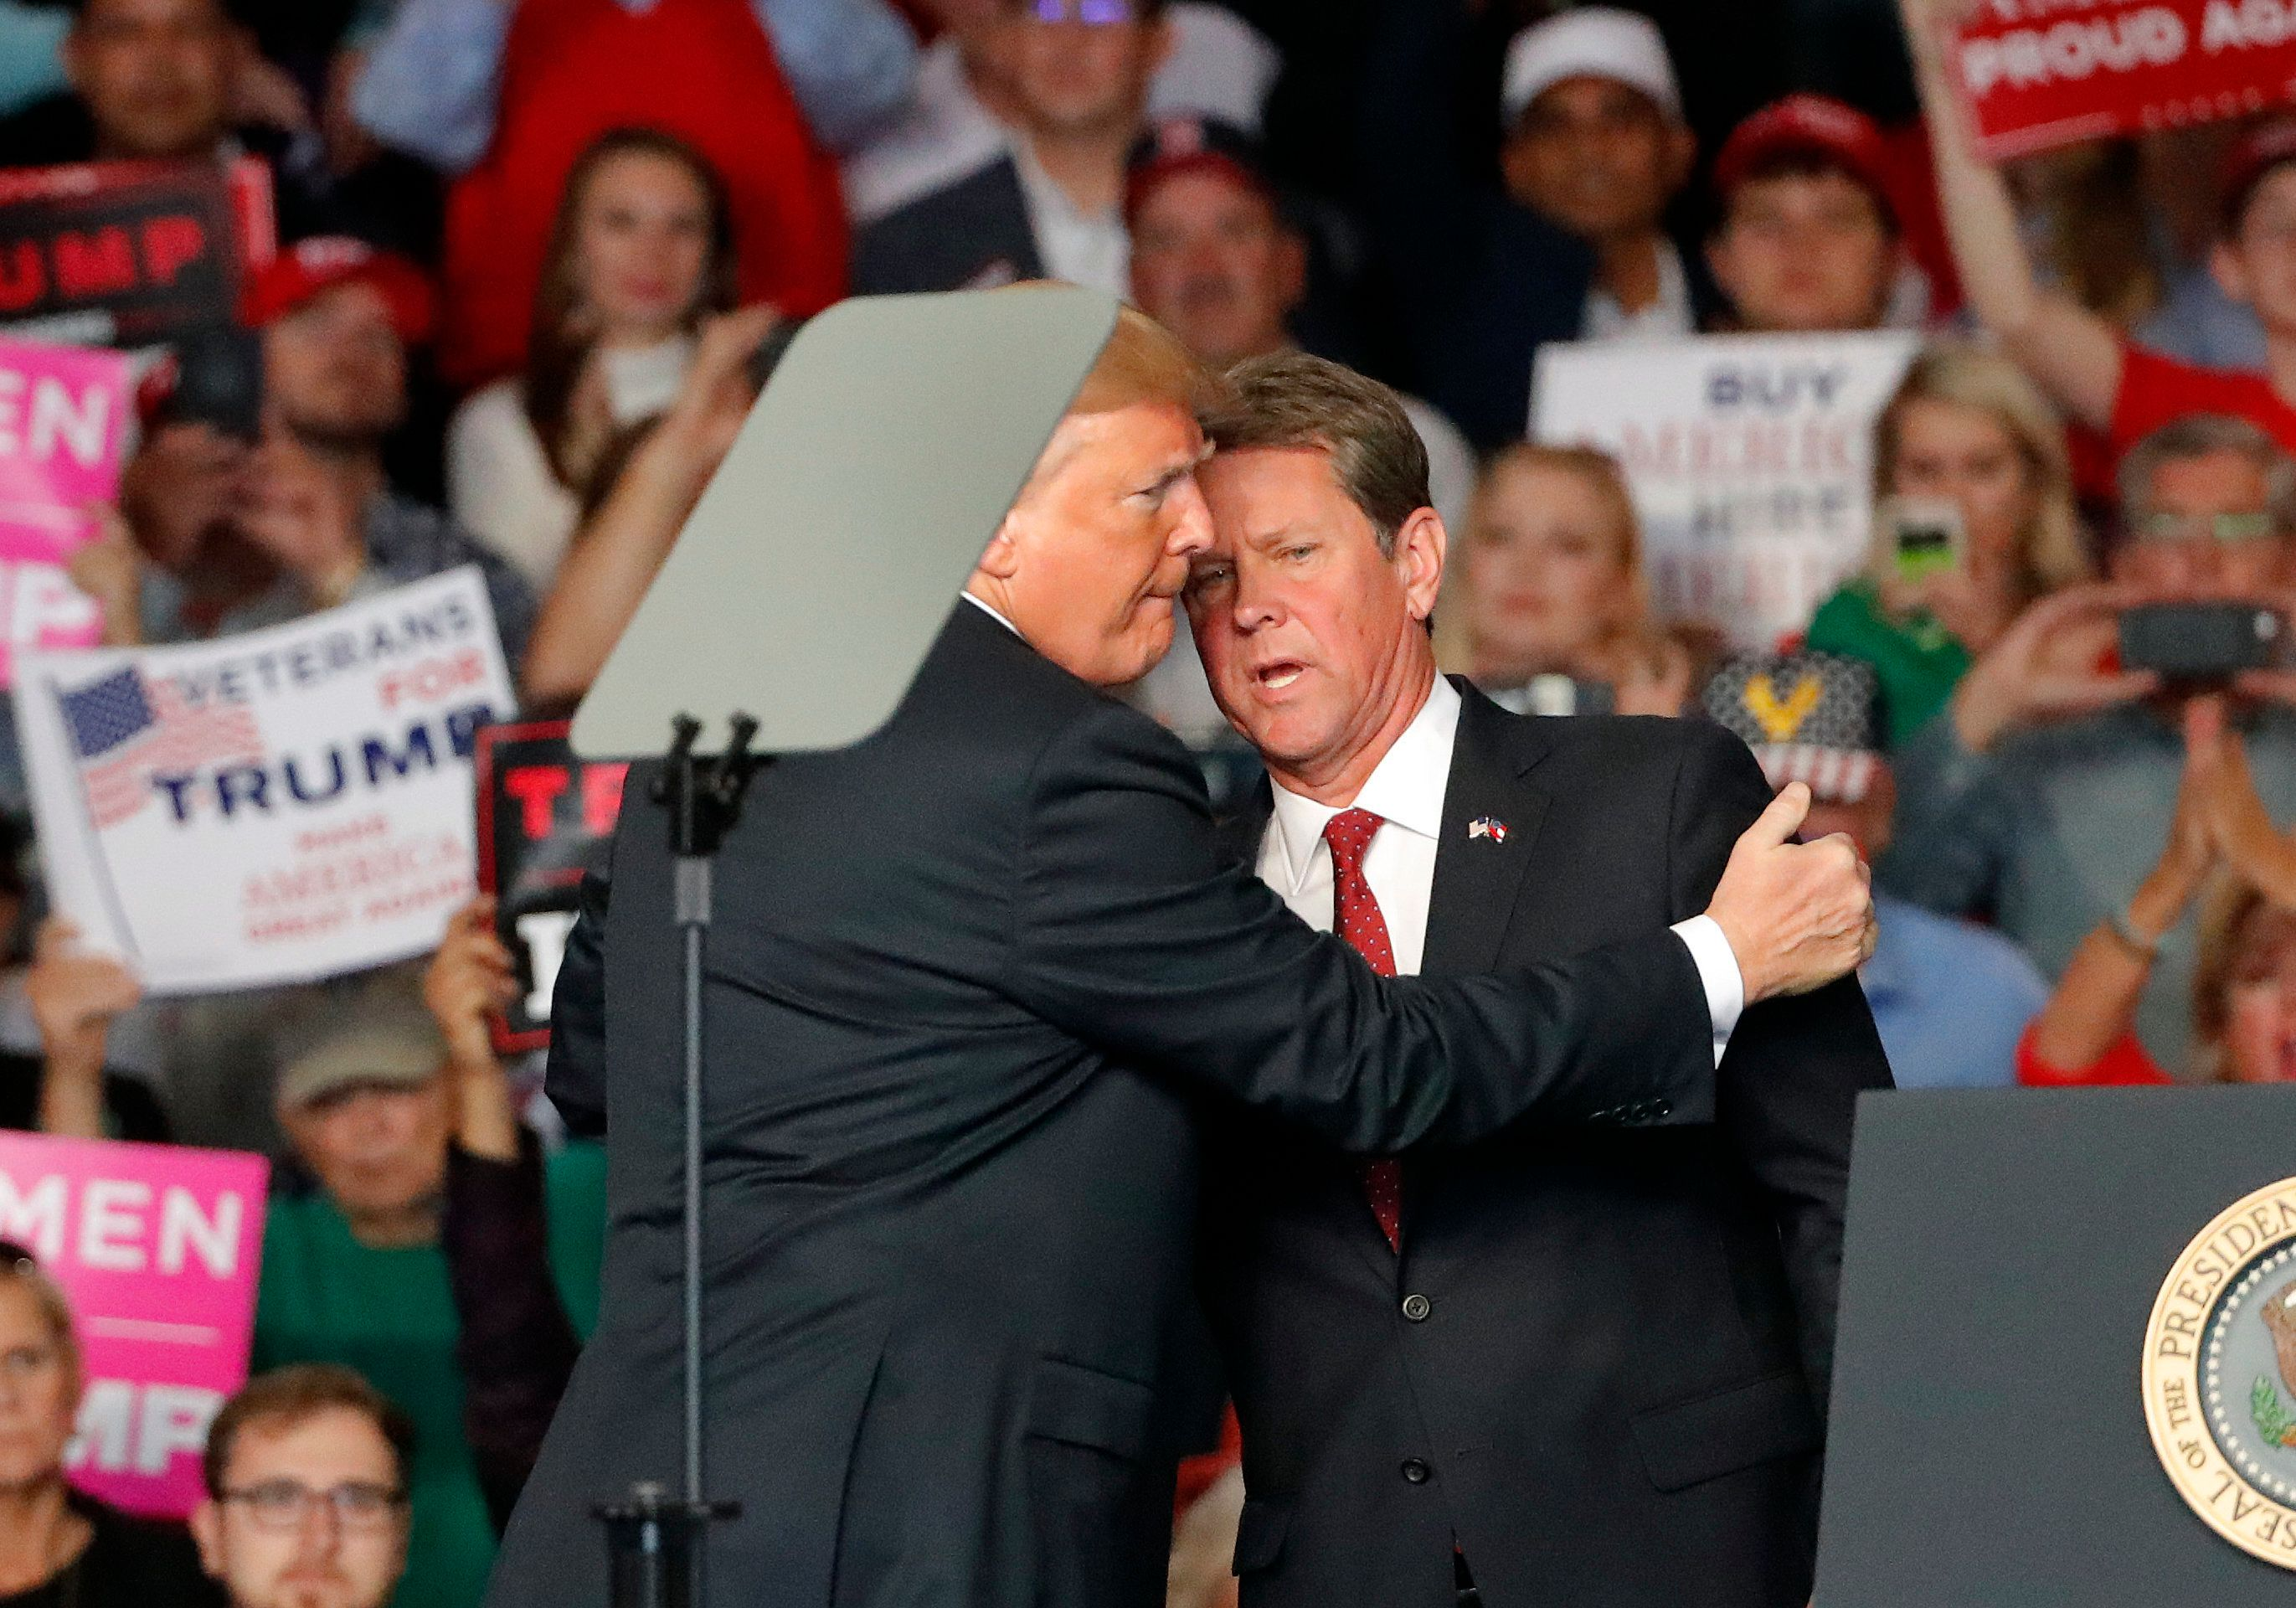 Georgia Republican gubernatorial nominee Brian Kemp, right, introduces President Donald Trump during a campaign rally Sunday, Nov. 4, 2018, in Macon, Ga. (AP Photo/John Bazemore)